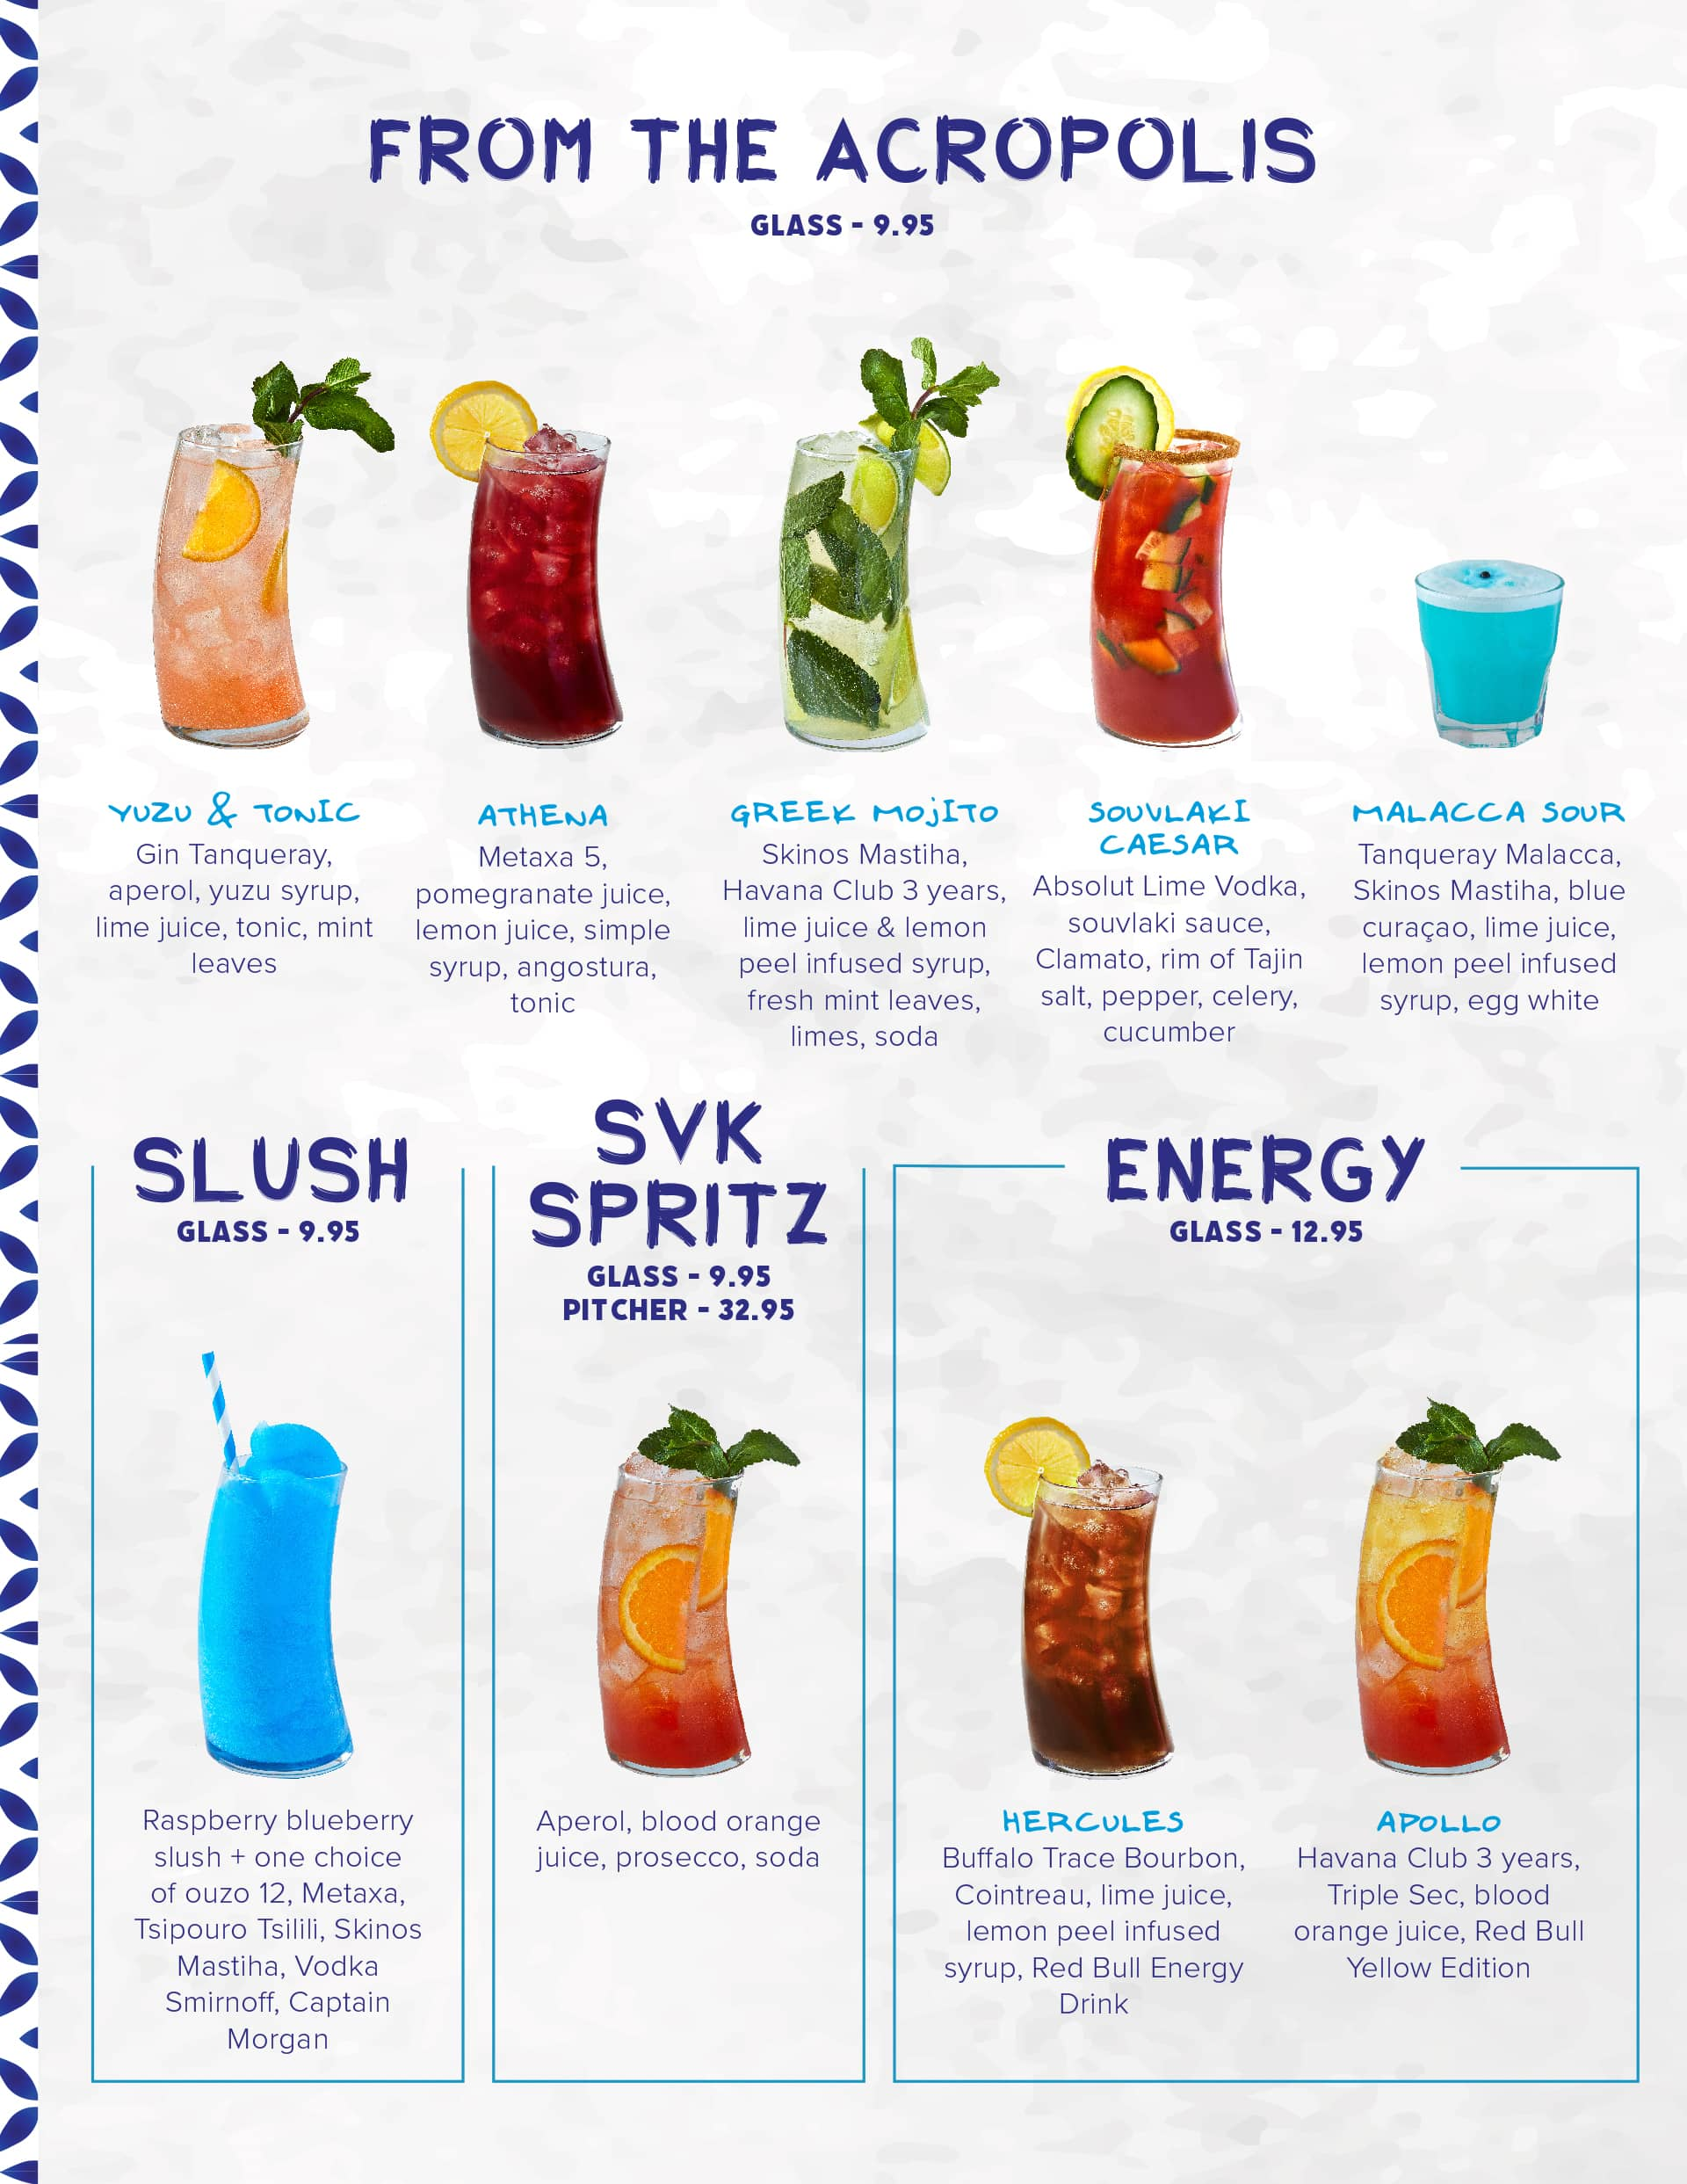 Drink menu with From the Acropolis, Slush, Spritz and Energy at Souvlaki Bar